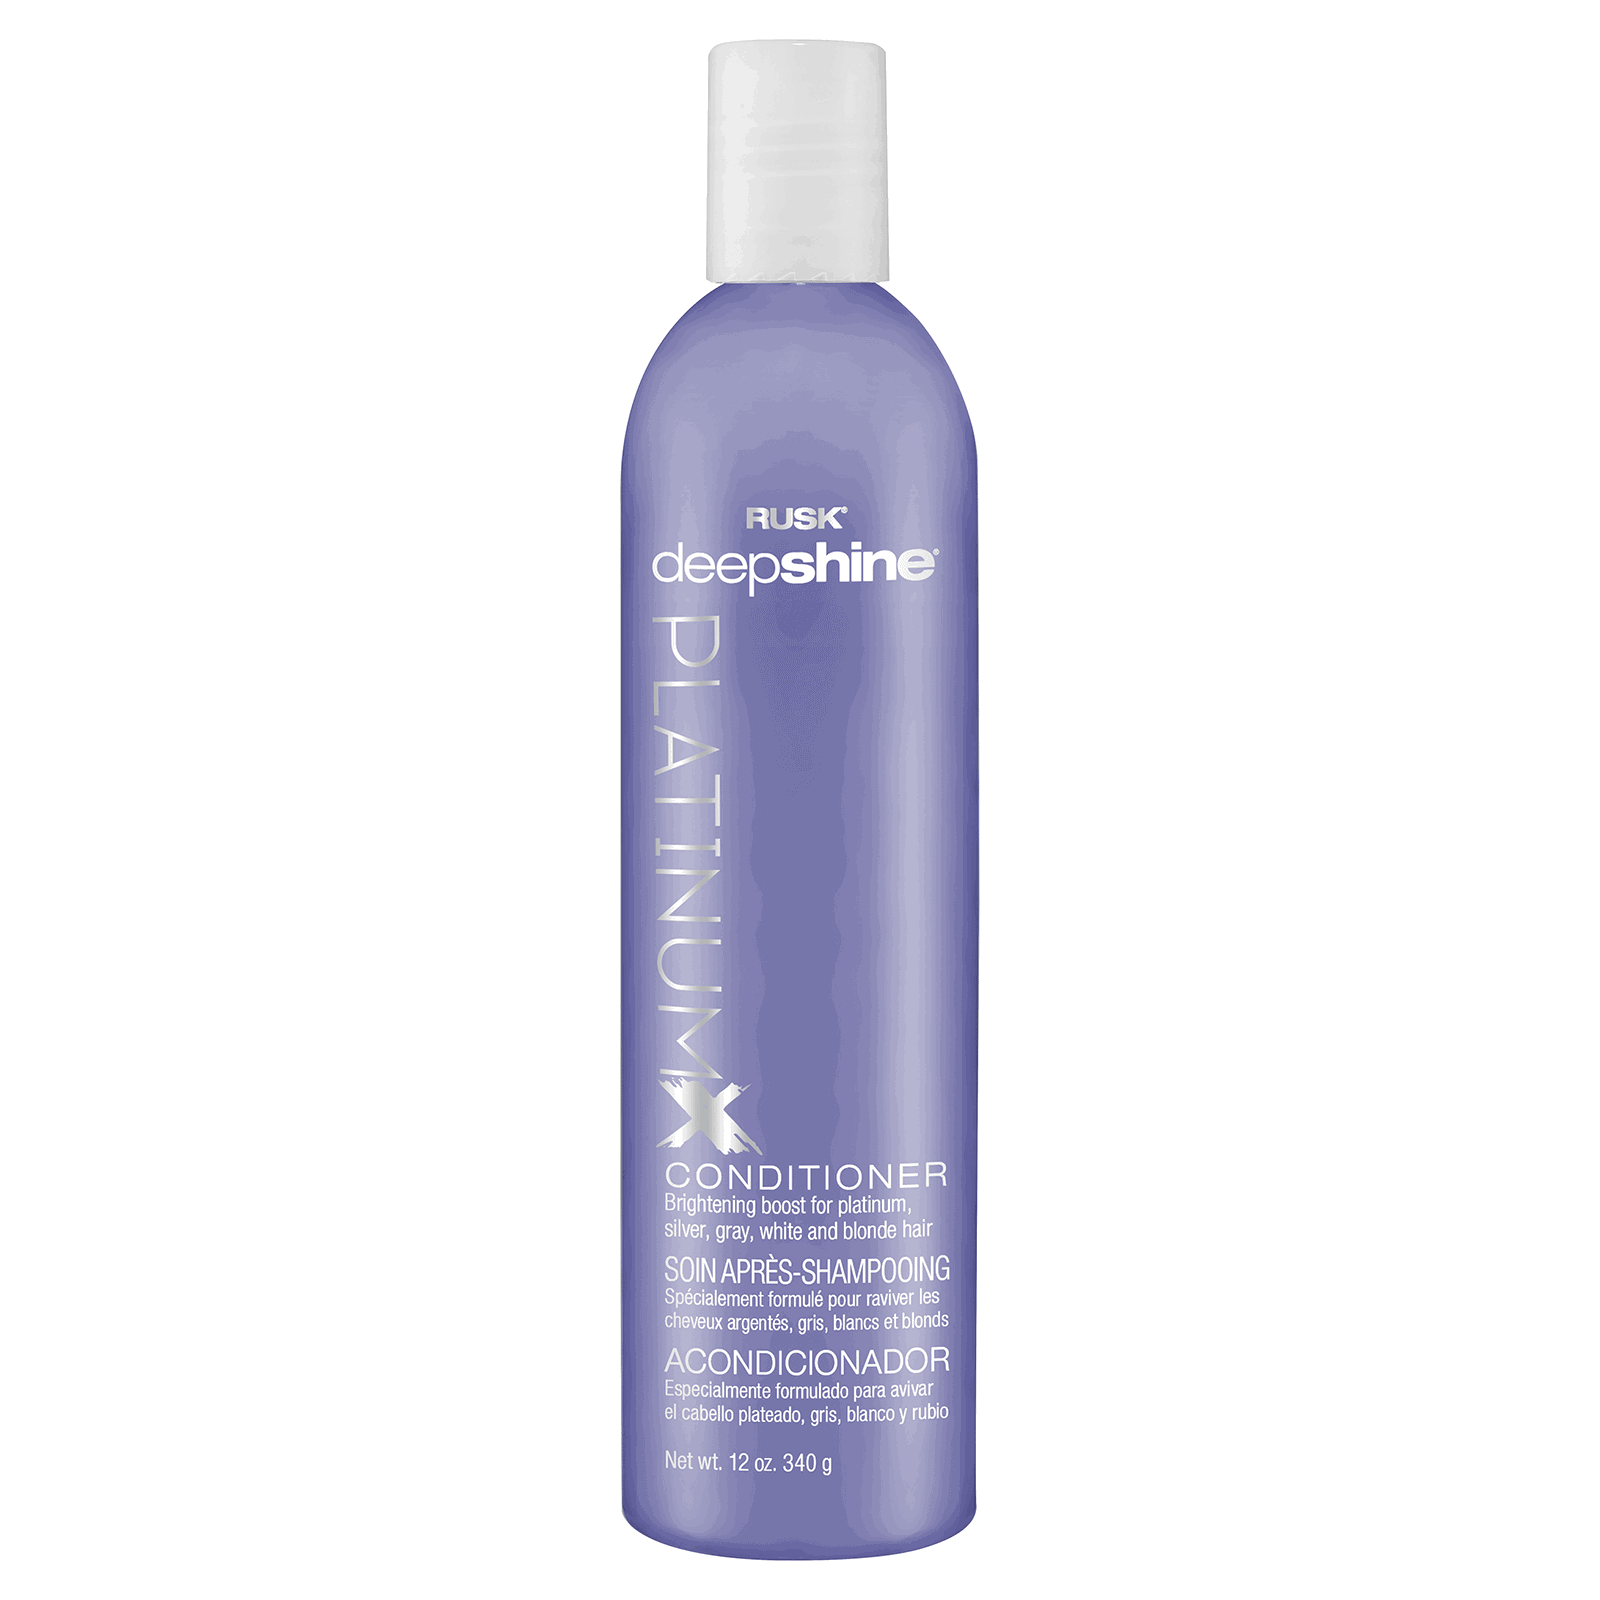 Deepshine PlatinumX Conditioner